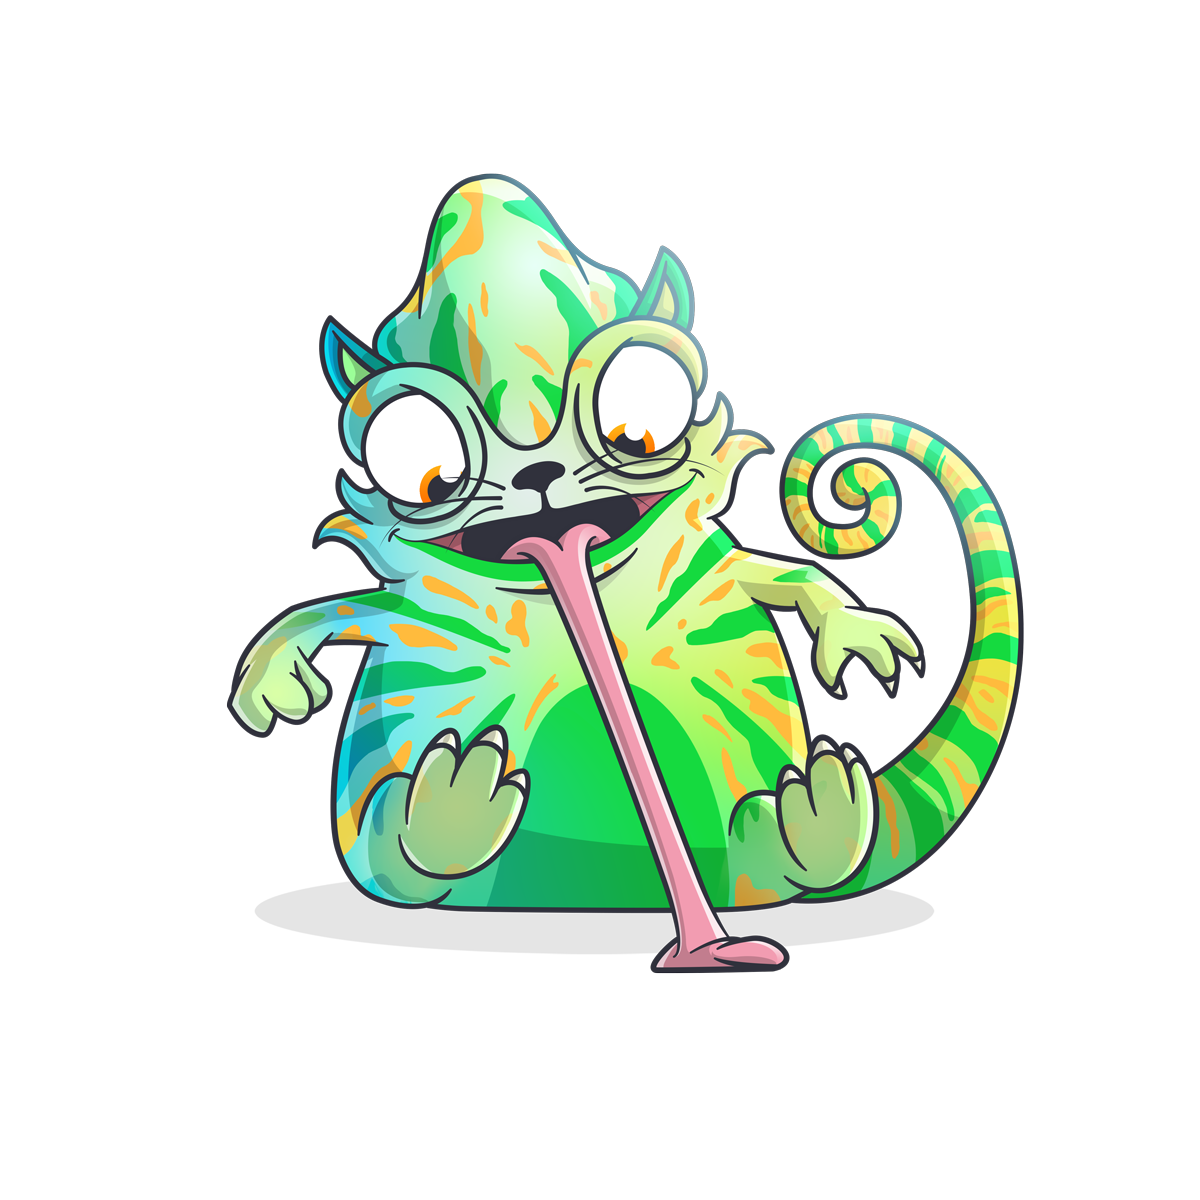 cryptokitty #1923190